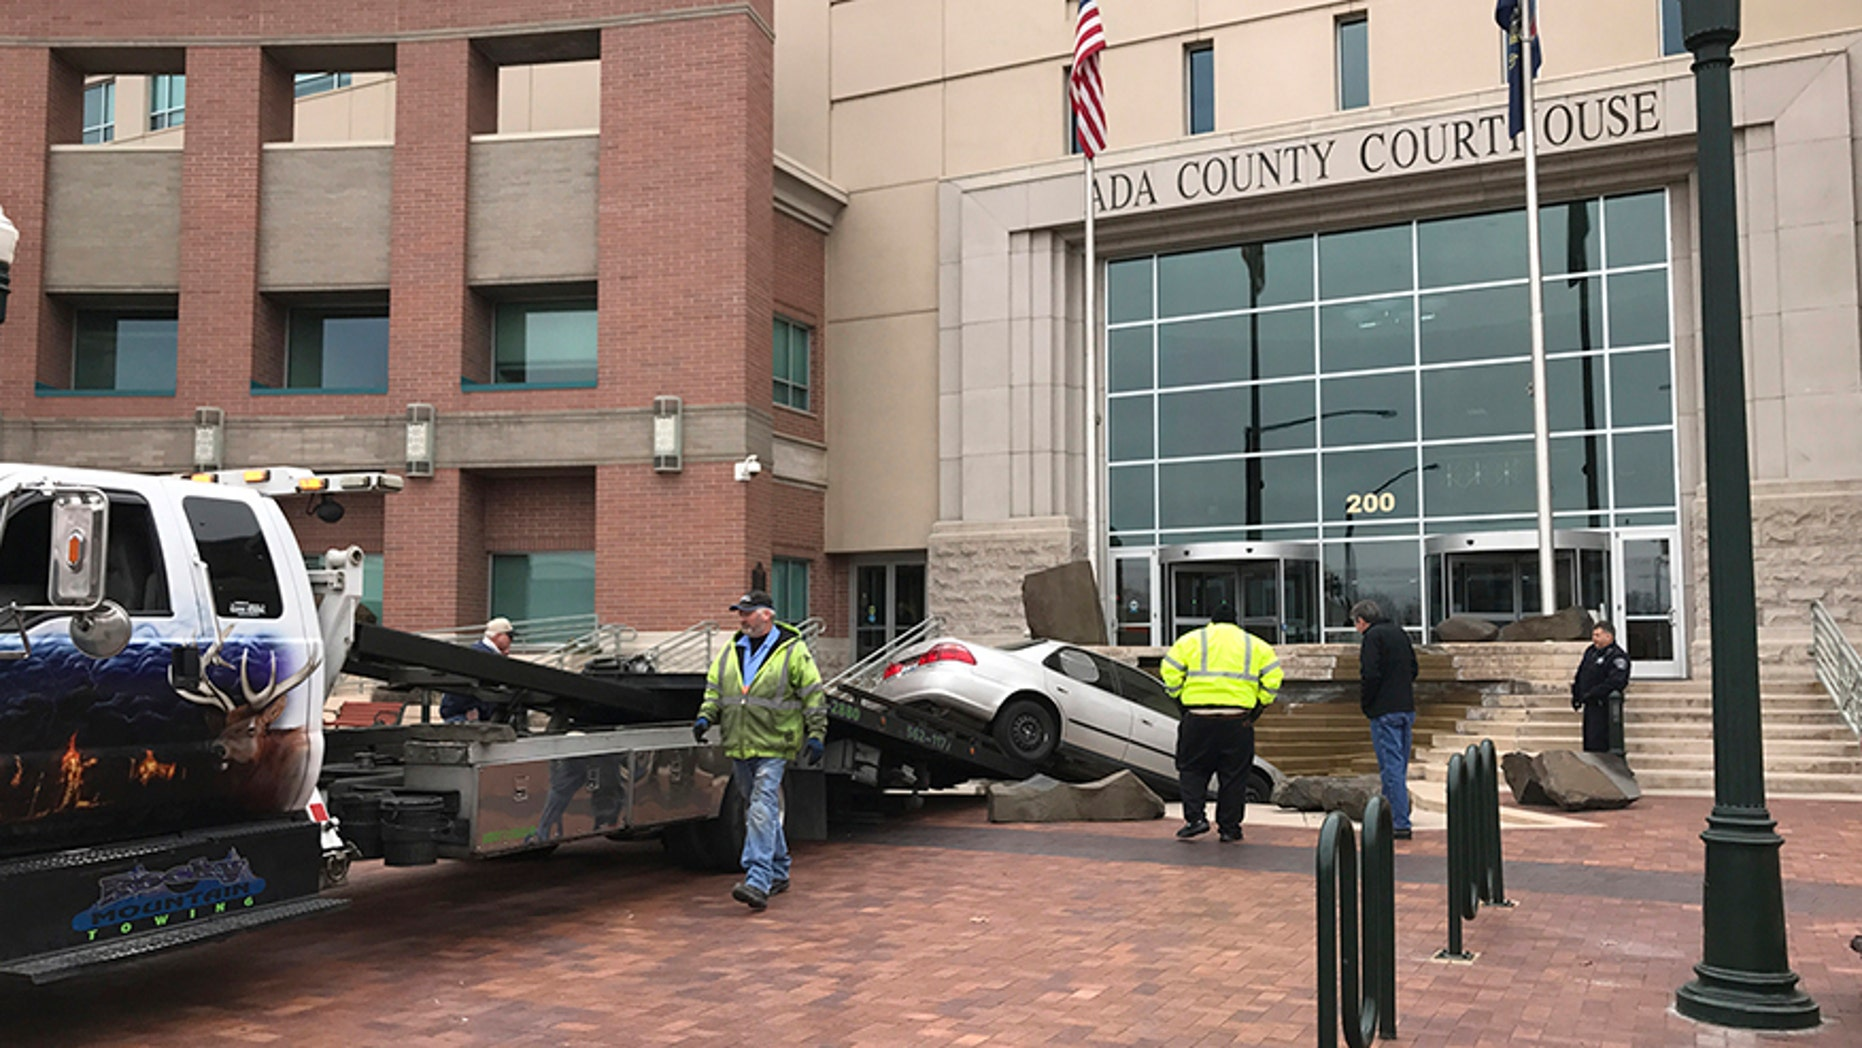 "Rescue crews remove a vehicle crashed earlier intentionally into the Ada County Courthouse fountain in Boise, Idaho, Sunday, Dec. 10, 2017. Authorities say Jonathan Locksmith upset with the court system tried to crash a car into the courthouse in the state's capital city Sunday morning, spinning his vehicle around in a ""doughnut"" before landing it in the fountain downtown Boise. Locksmith was arrested on a misdemeanor reckless driving charge and is now in jail. (Katy Moeller/The Idaho Statesman via AP)"